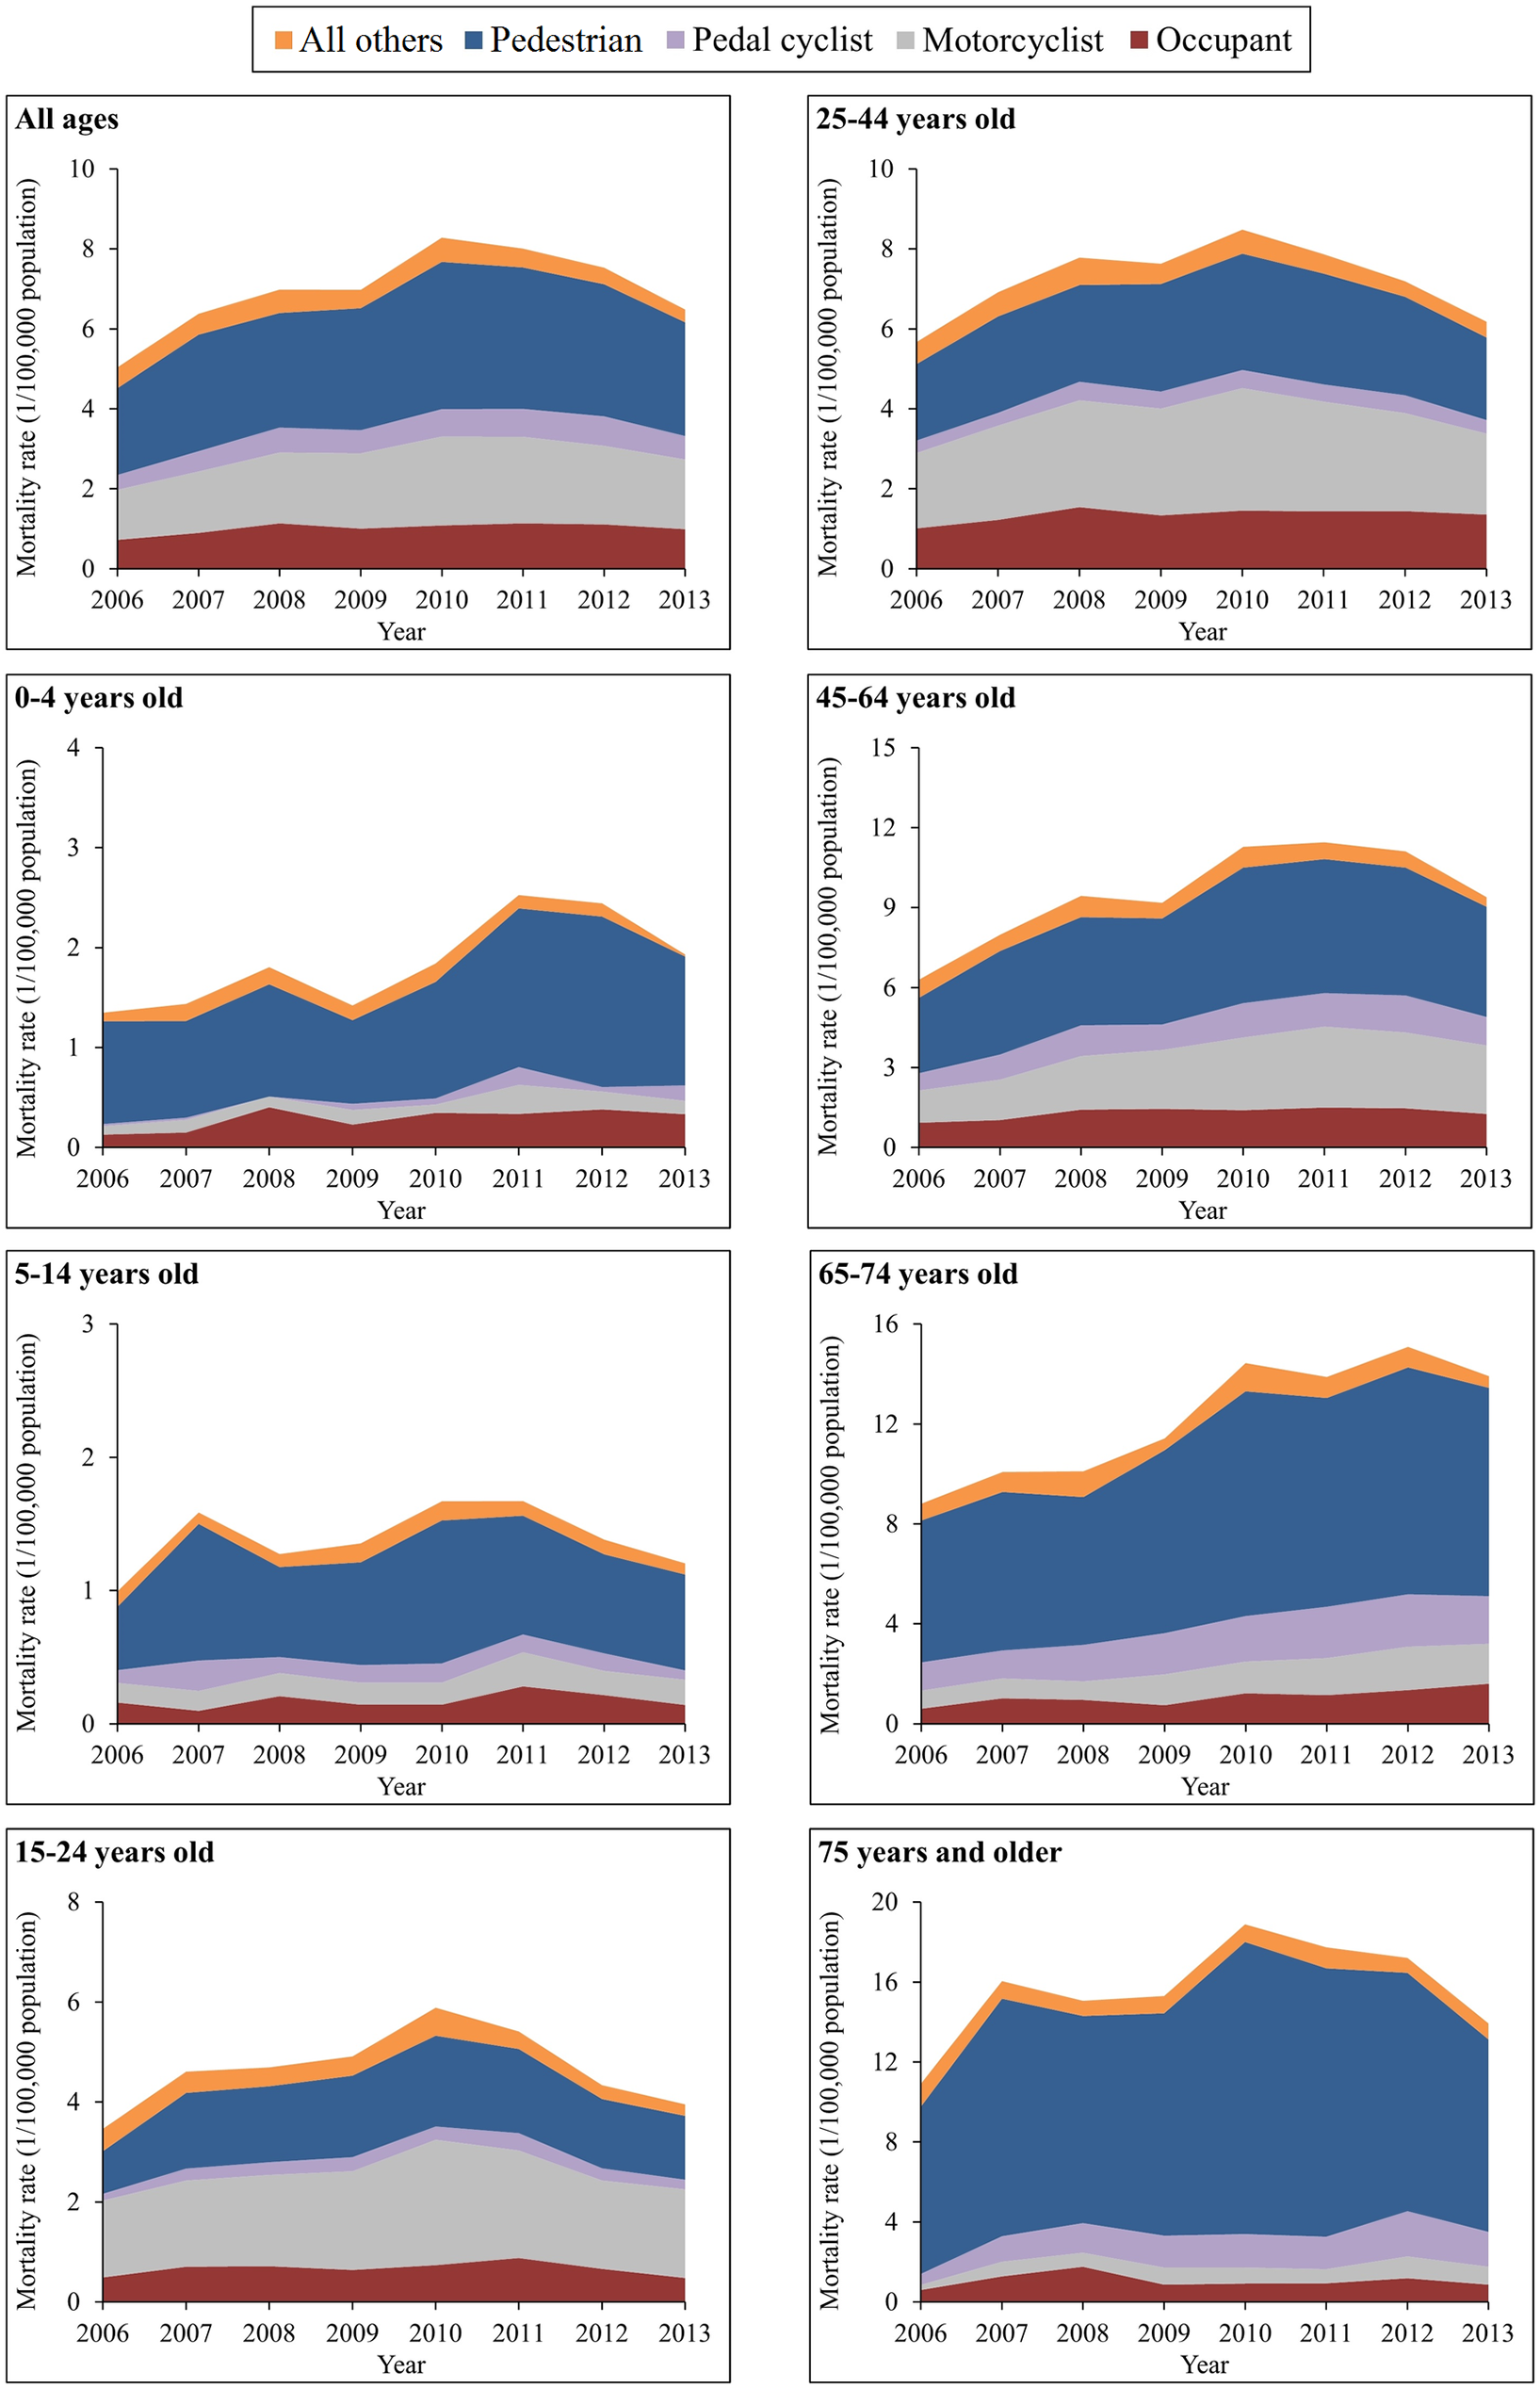 Mortality rates from traumatic brain injury due to motor vehicle crashes by age group and road user category (China, 2006–2013).